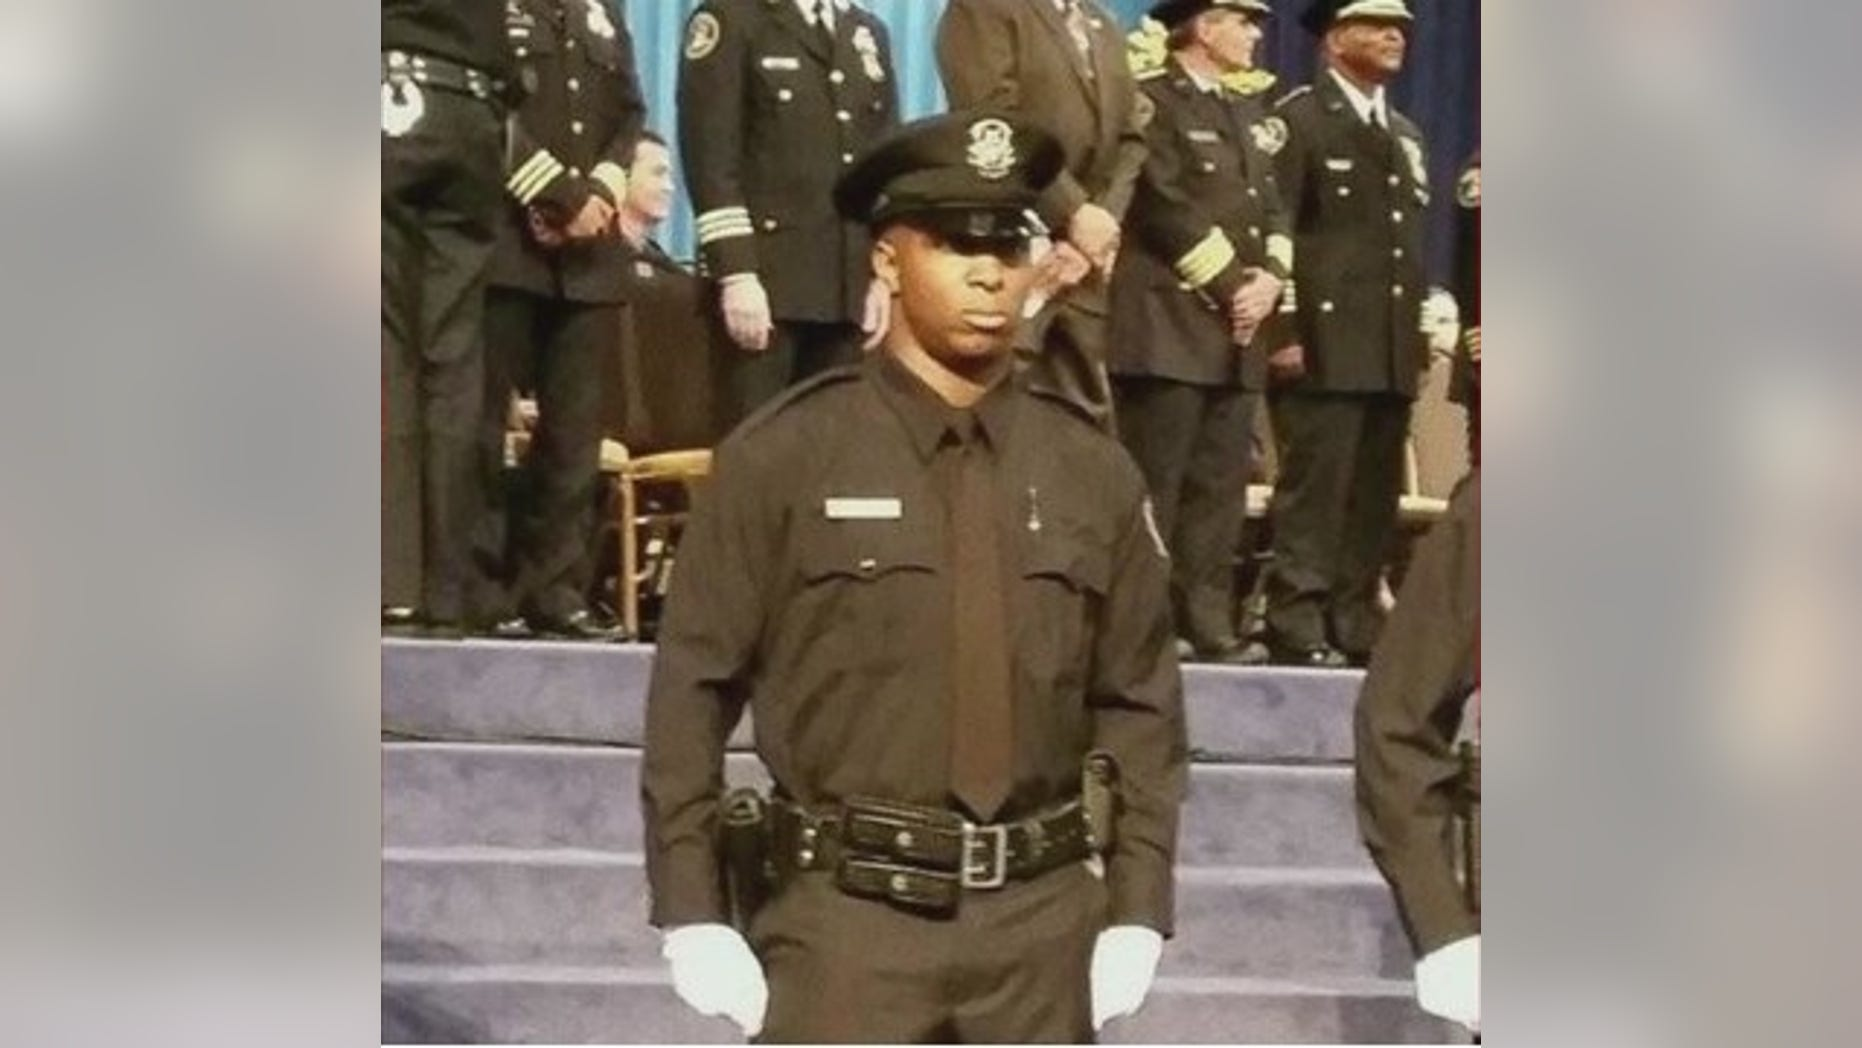 Detroit Police Office Glenn Doss Jr. died Sunday after being shot in the head and chest Wednesday while responding to a domestic violence call.